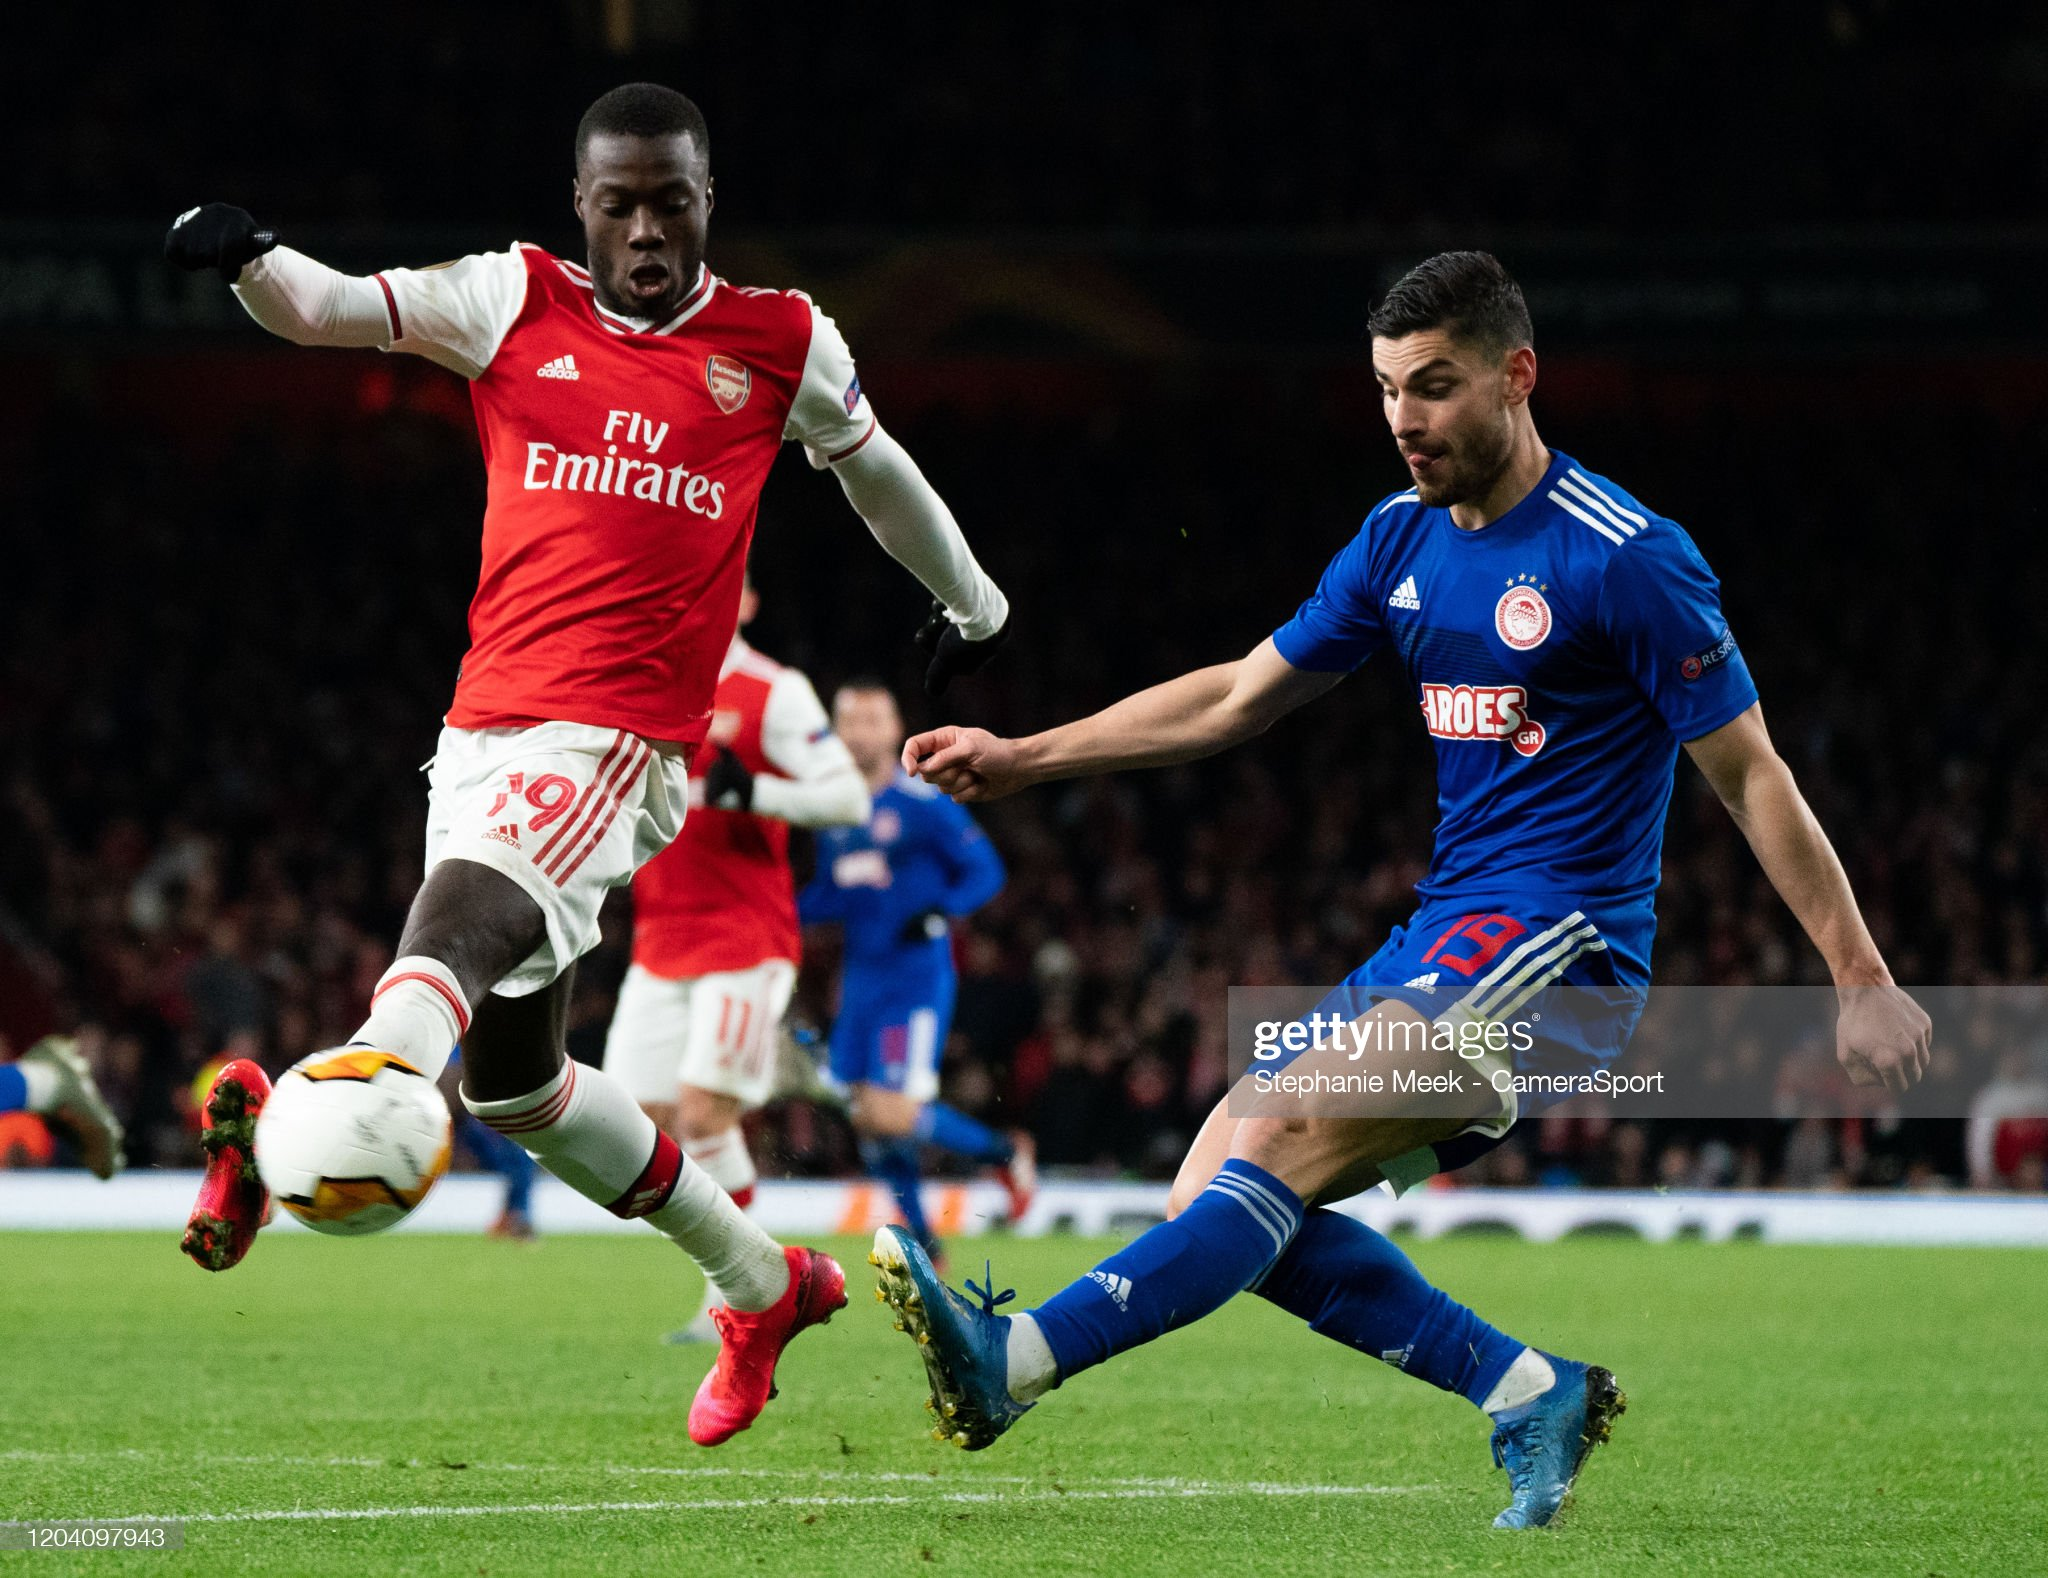 Olympiacos vs Arsenal preview, prediction and odds